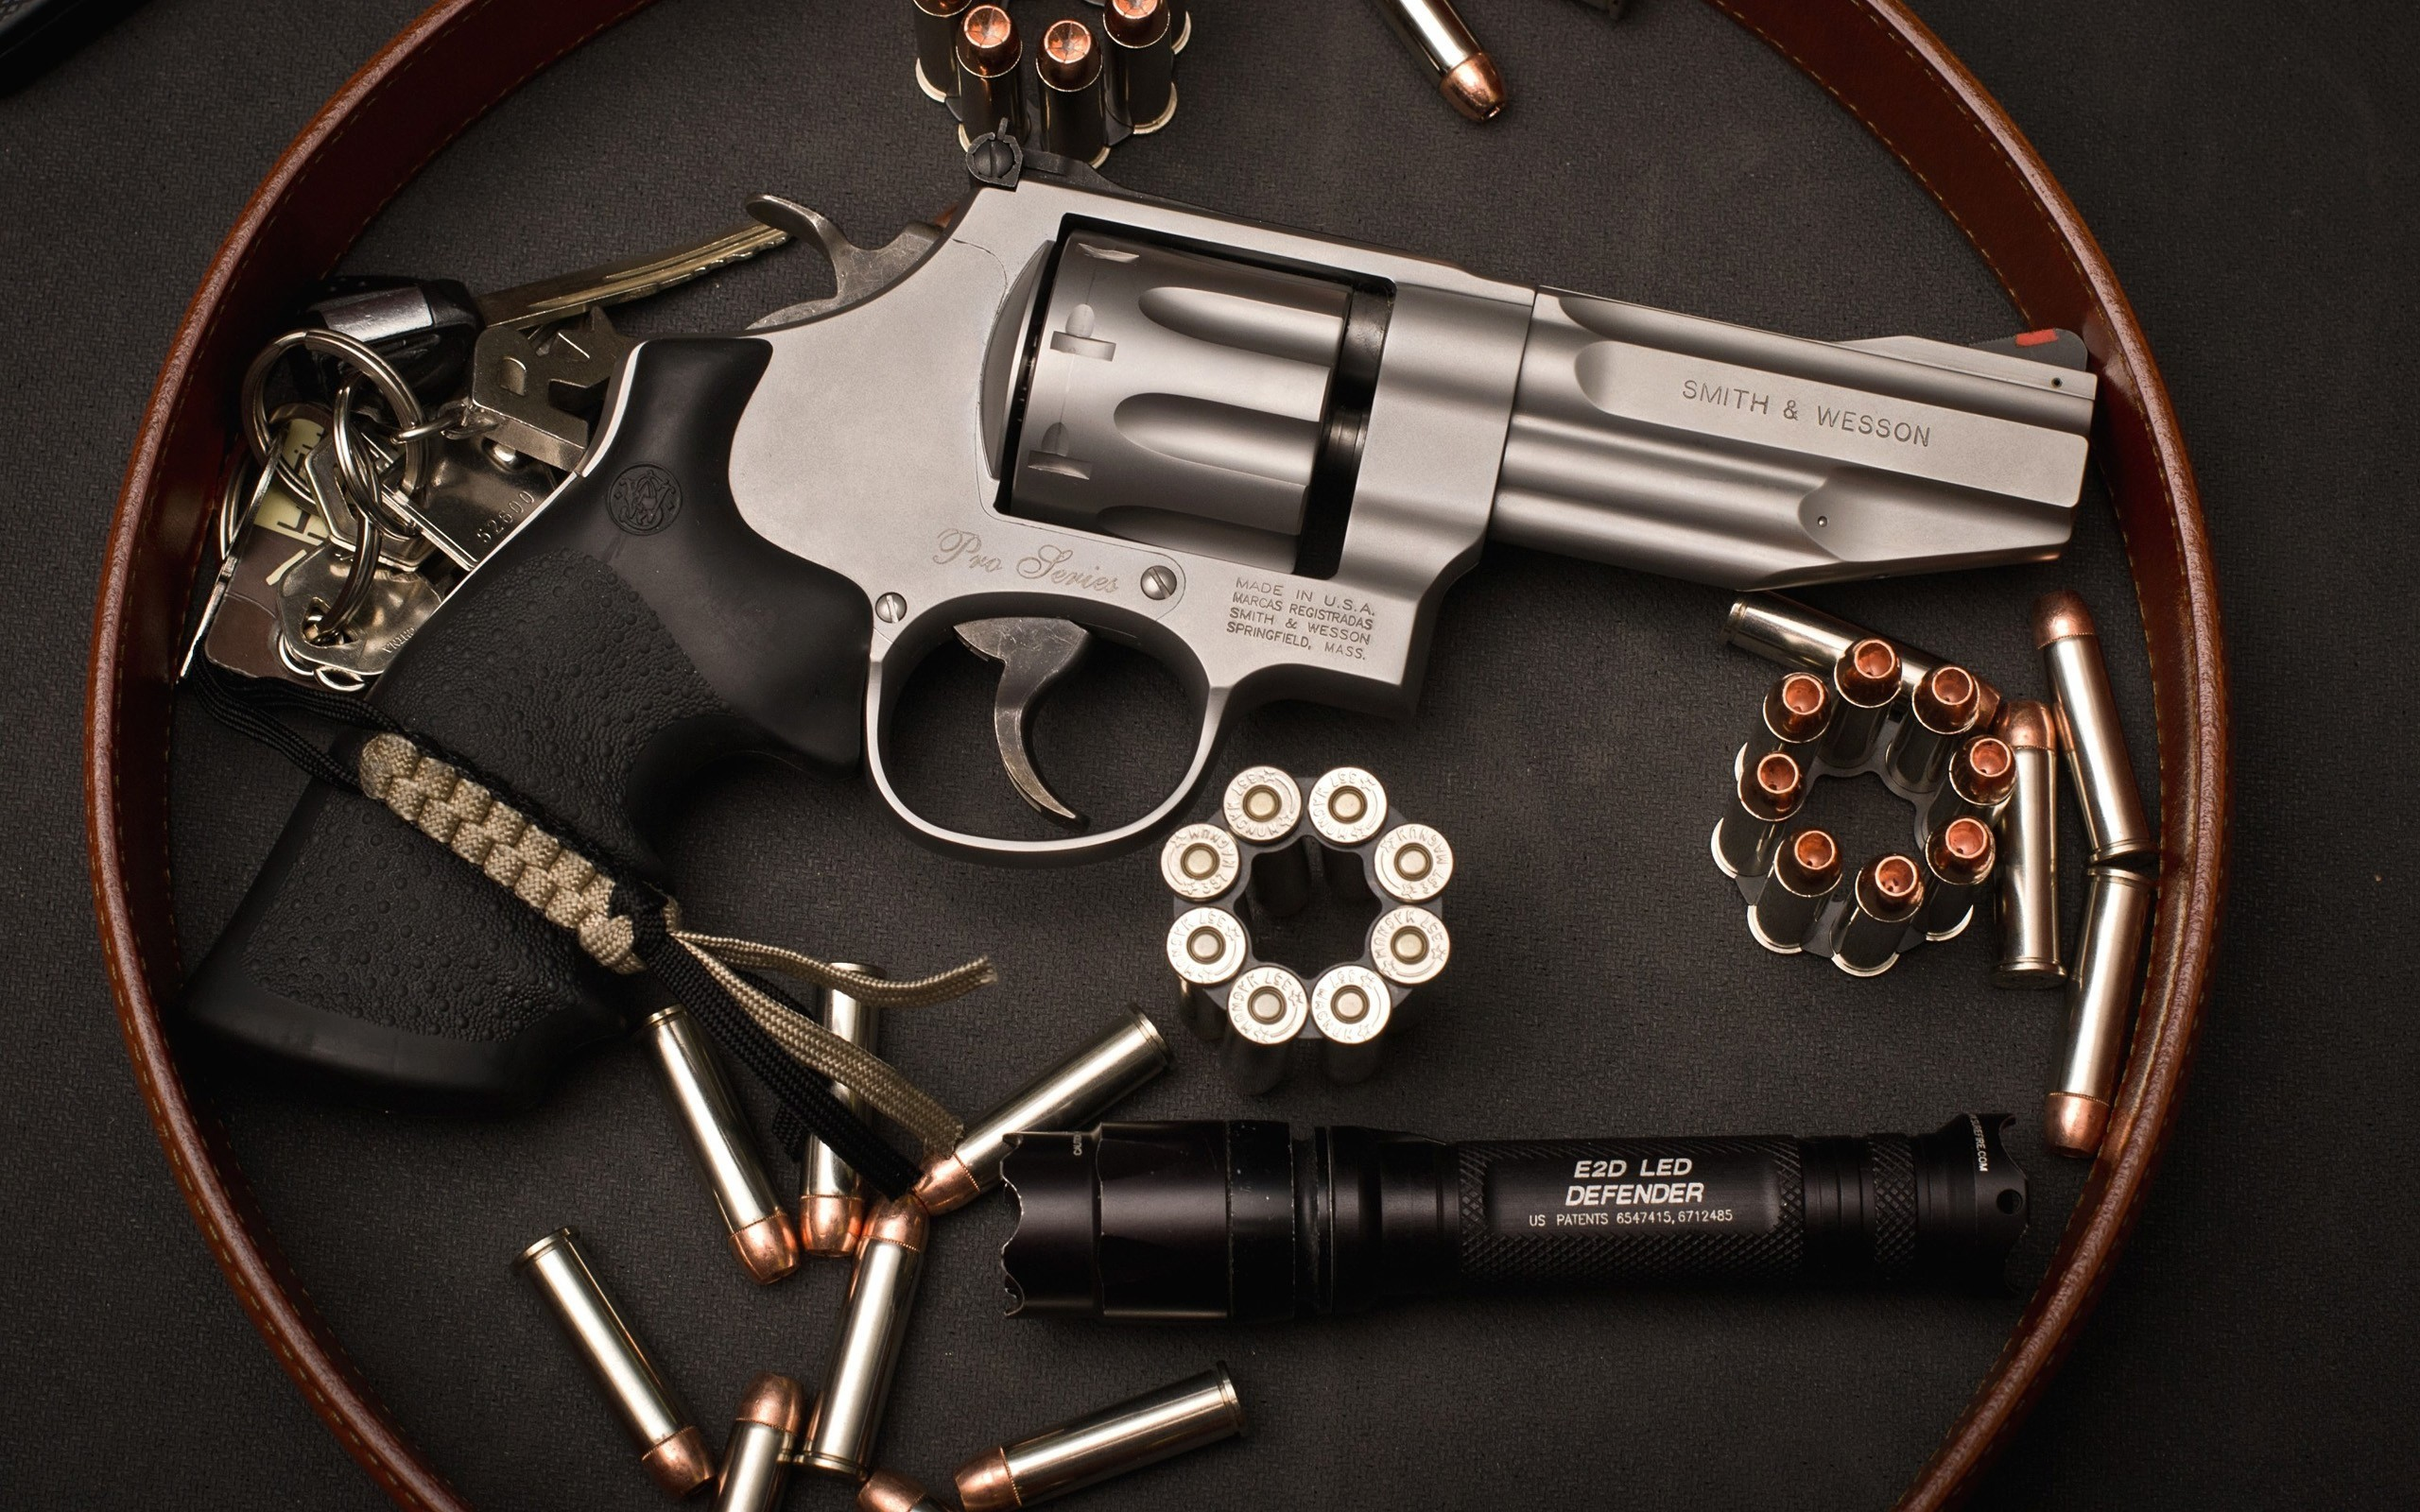 2560x1600 #1582352, Widescreen Wallpapers: smith and wesson revolver pic